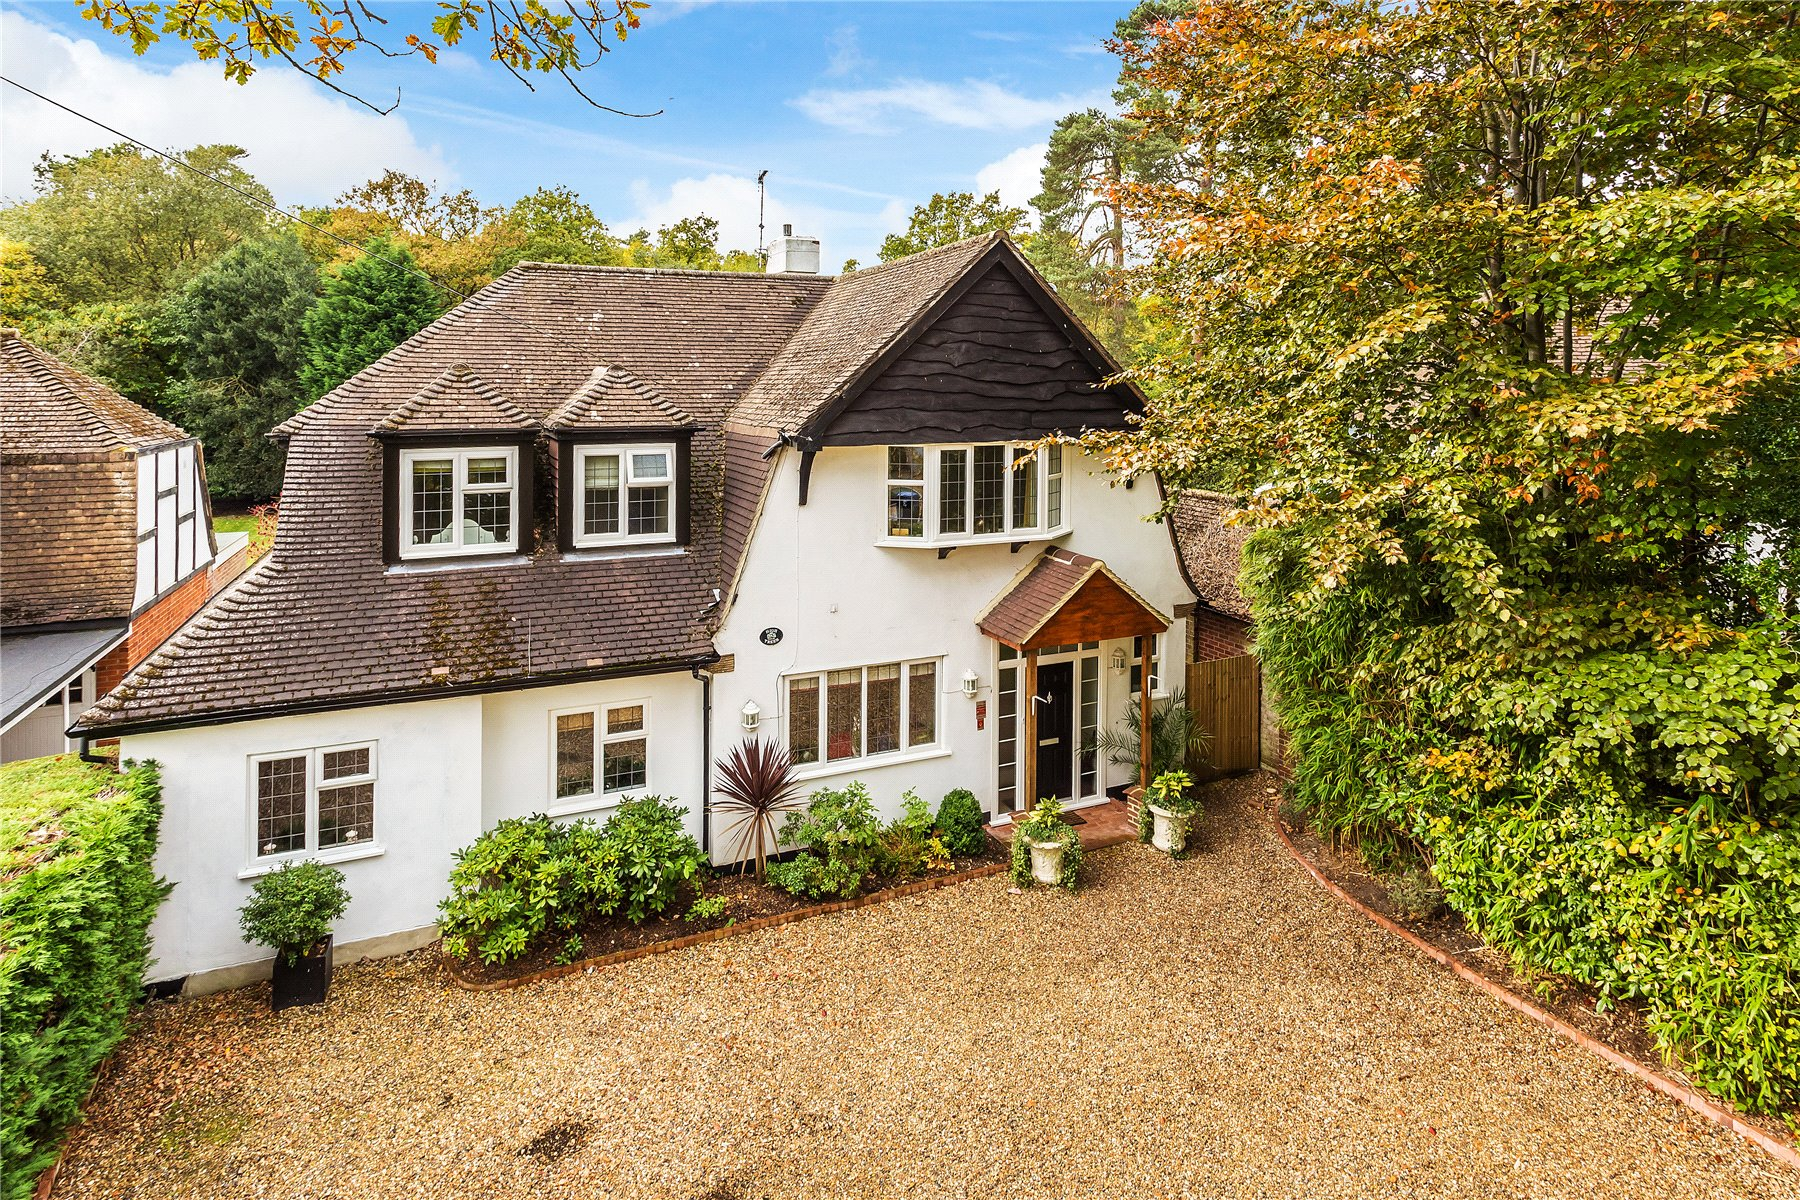 4 Bedrooms Detached House for sale in The Riding, Woodham, Woking, Surrey, GU21